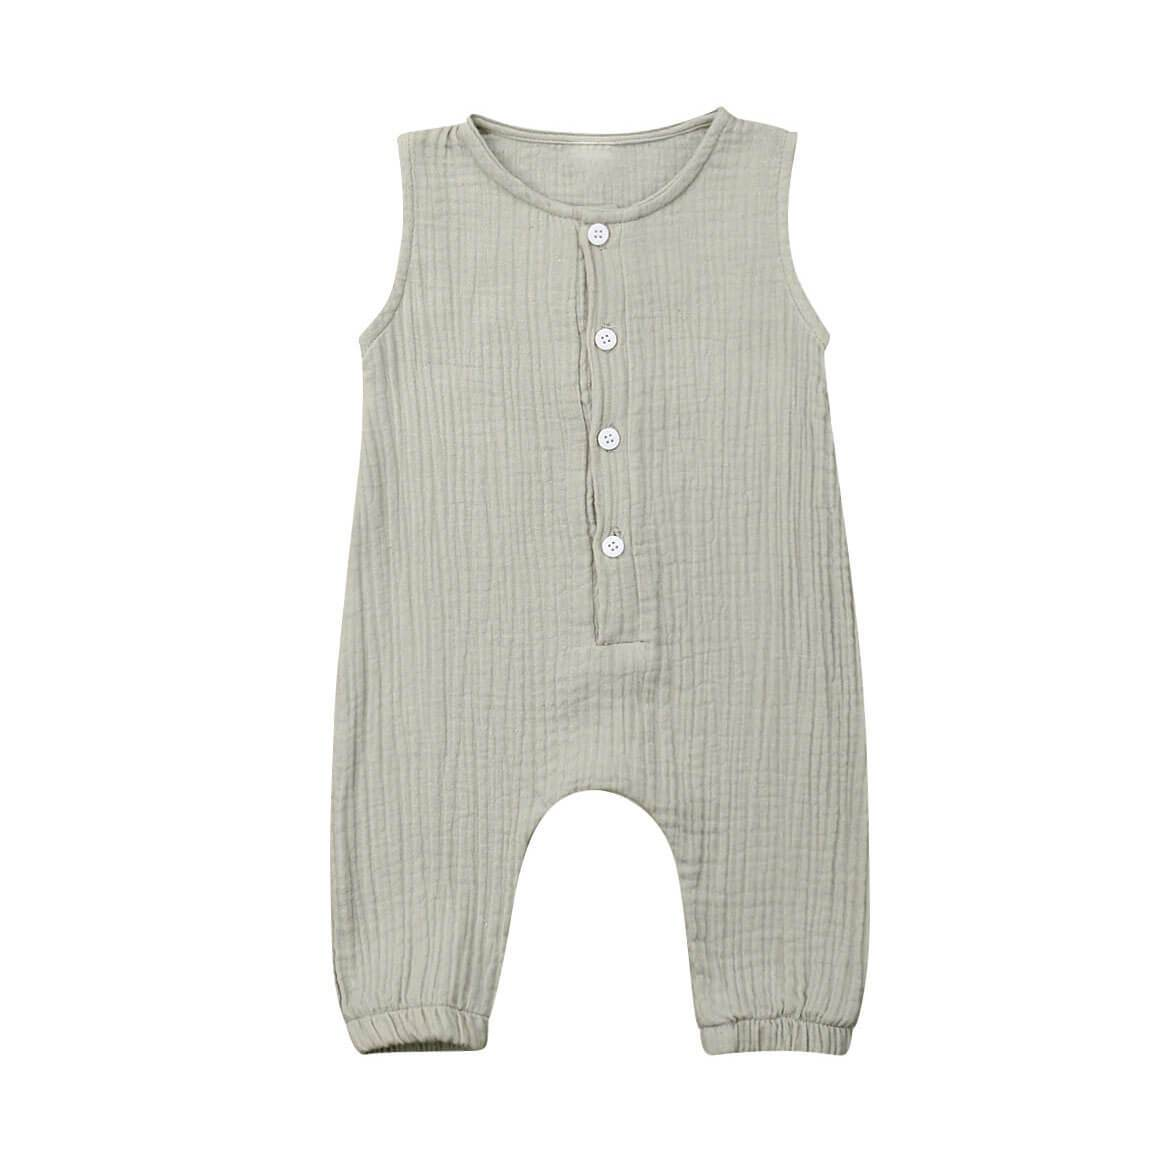 Solid Sleeveless Jumpsuit - The Trendy Toddlers